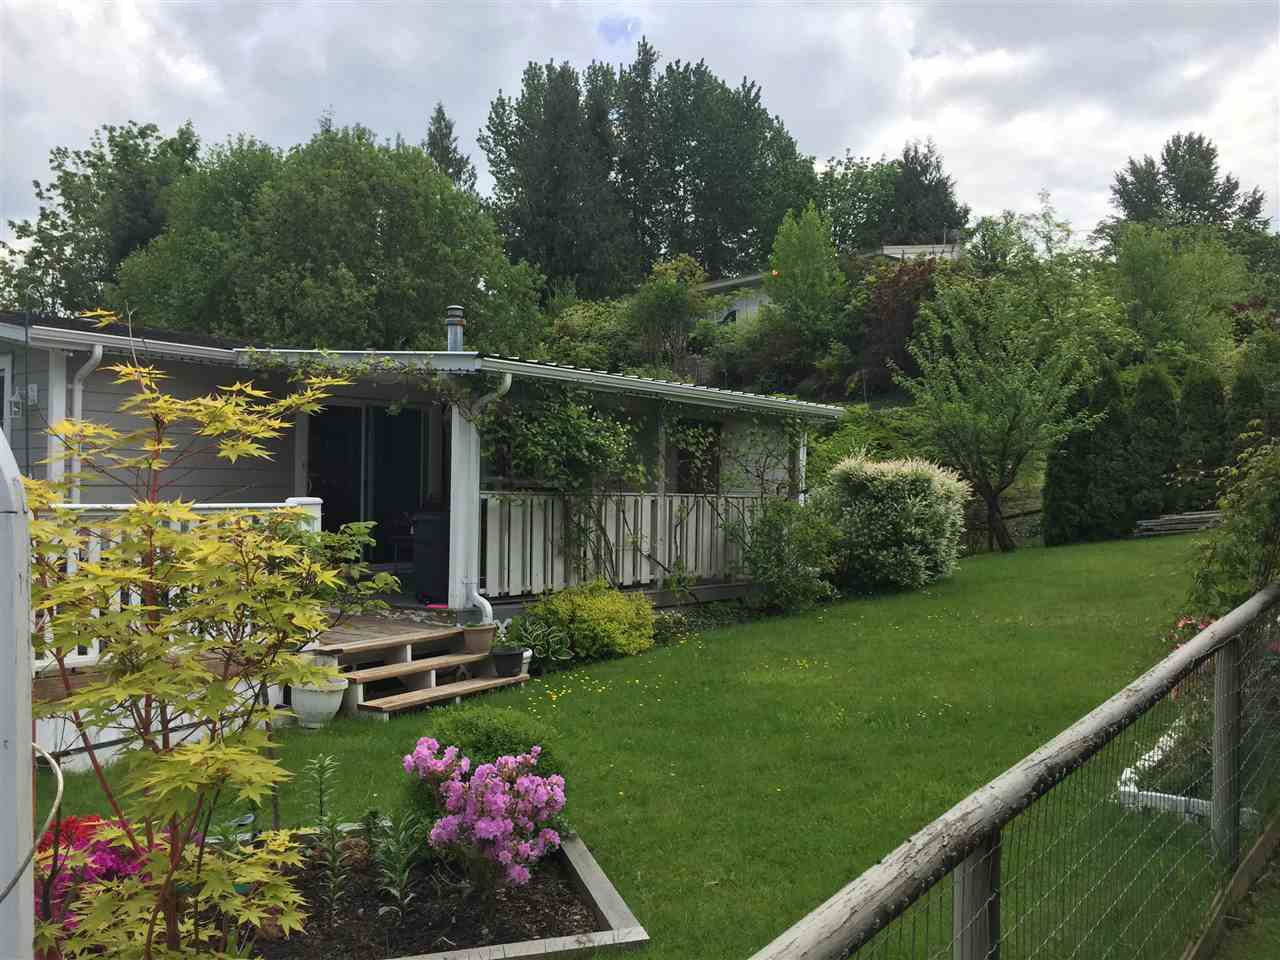 """Main Photo: 1 3300 HORN Street in Abbotsford: Central Abbotsford Manufactured Home for sale in """"Georgian Park"""" : MLS®# R2168217"""